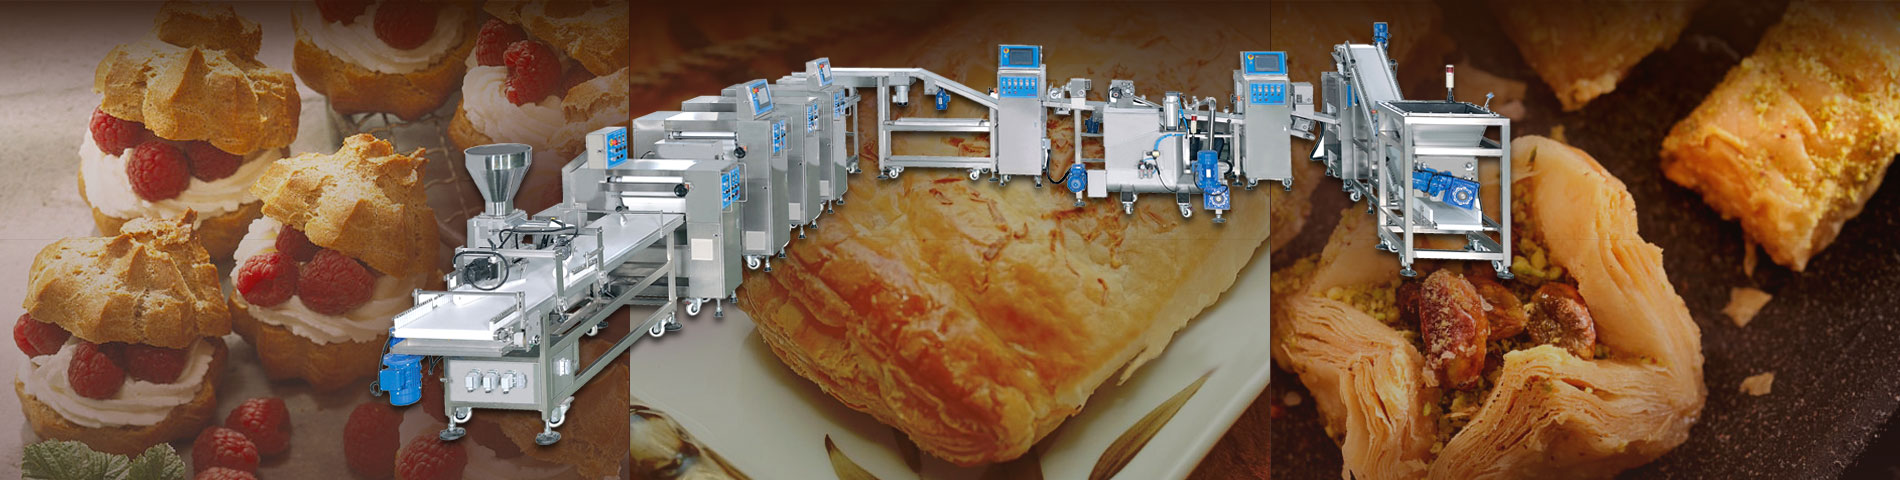 Puff Pastry TY3000L pastry machine